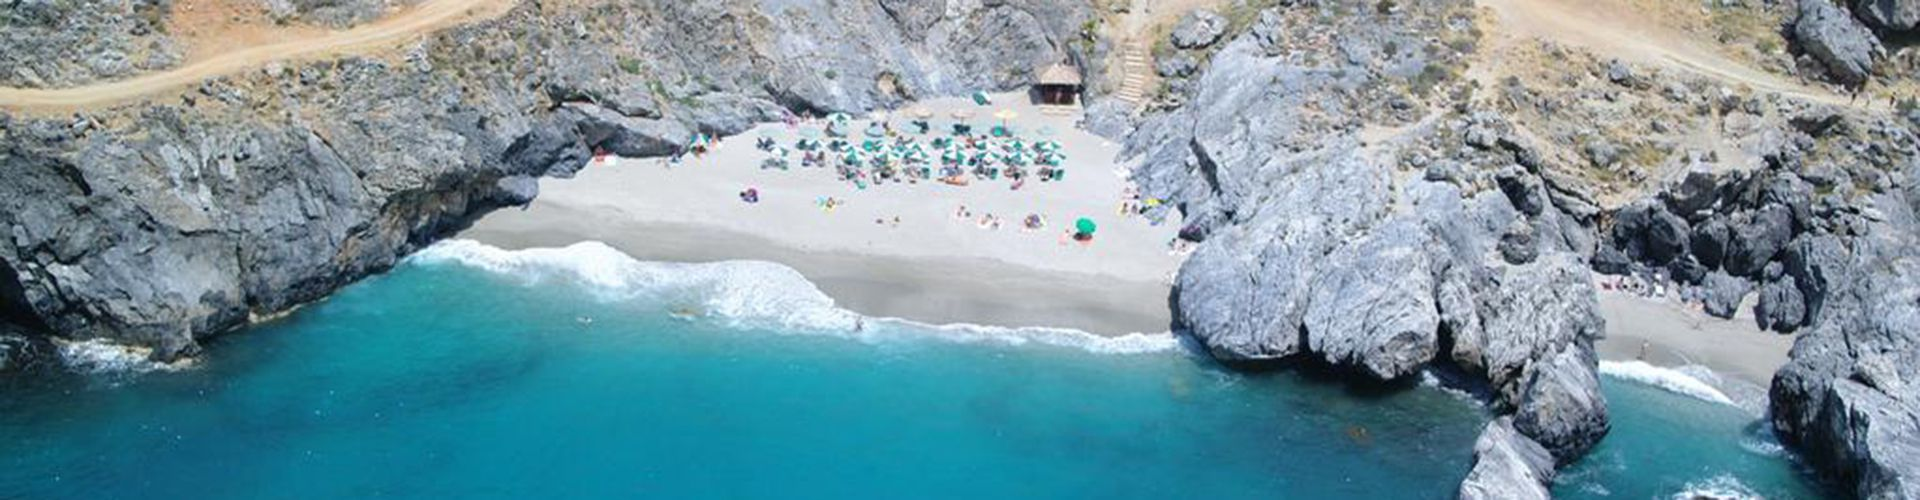 Rent a Car in Crete - Small Cars - Medium Cars - Luxury Cars - SUVs - Rent yours now